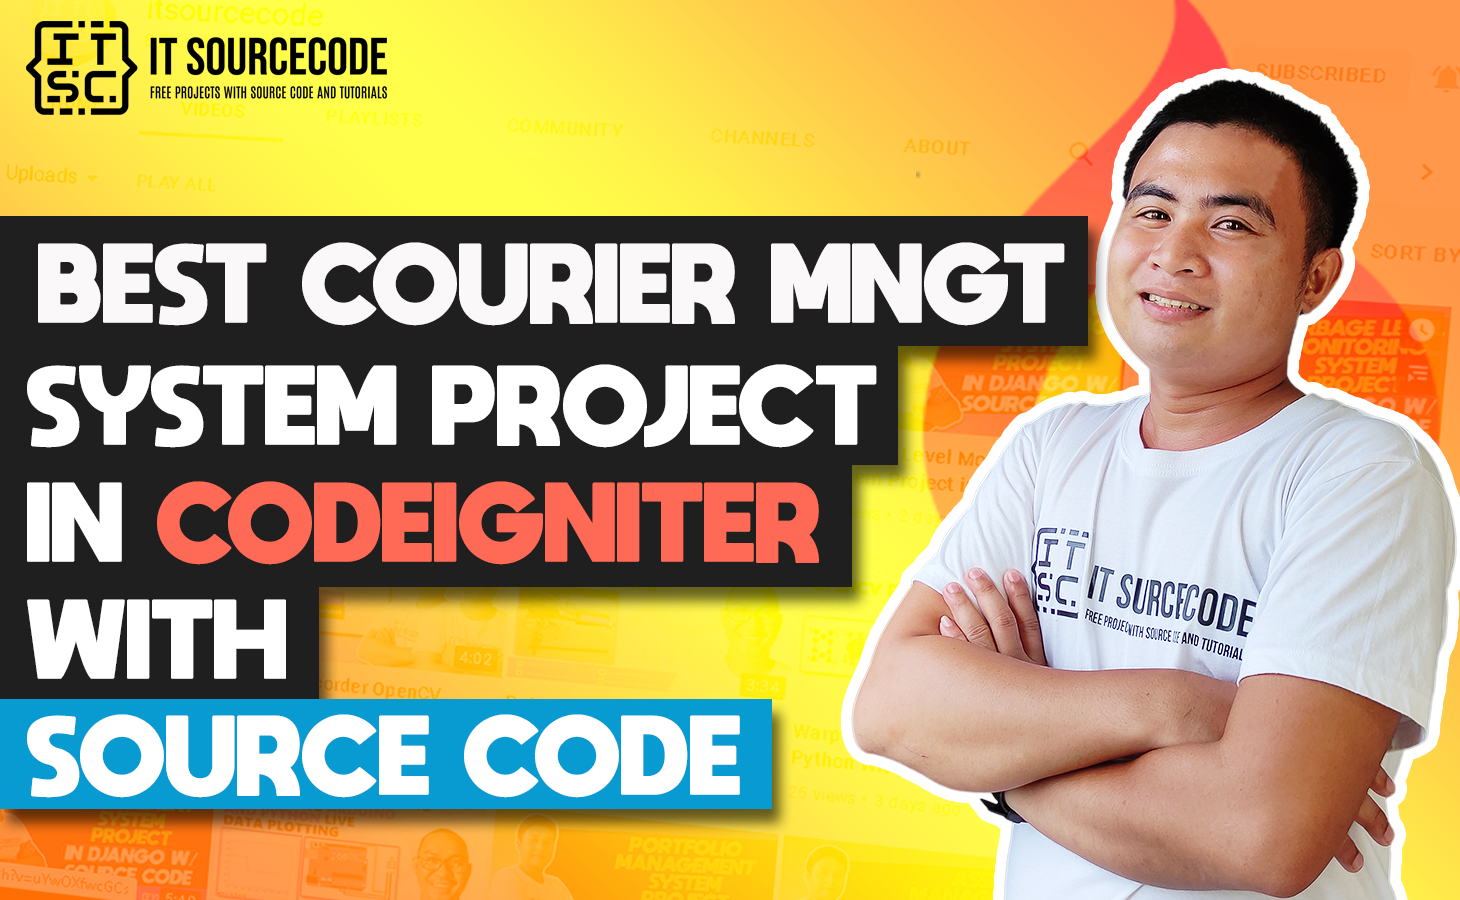 Courier Management System Project In CodeIgniter With Source Code